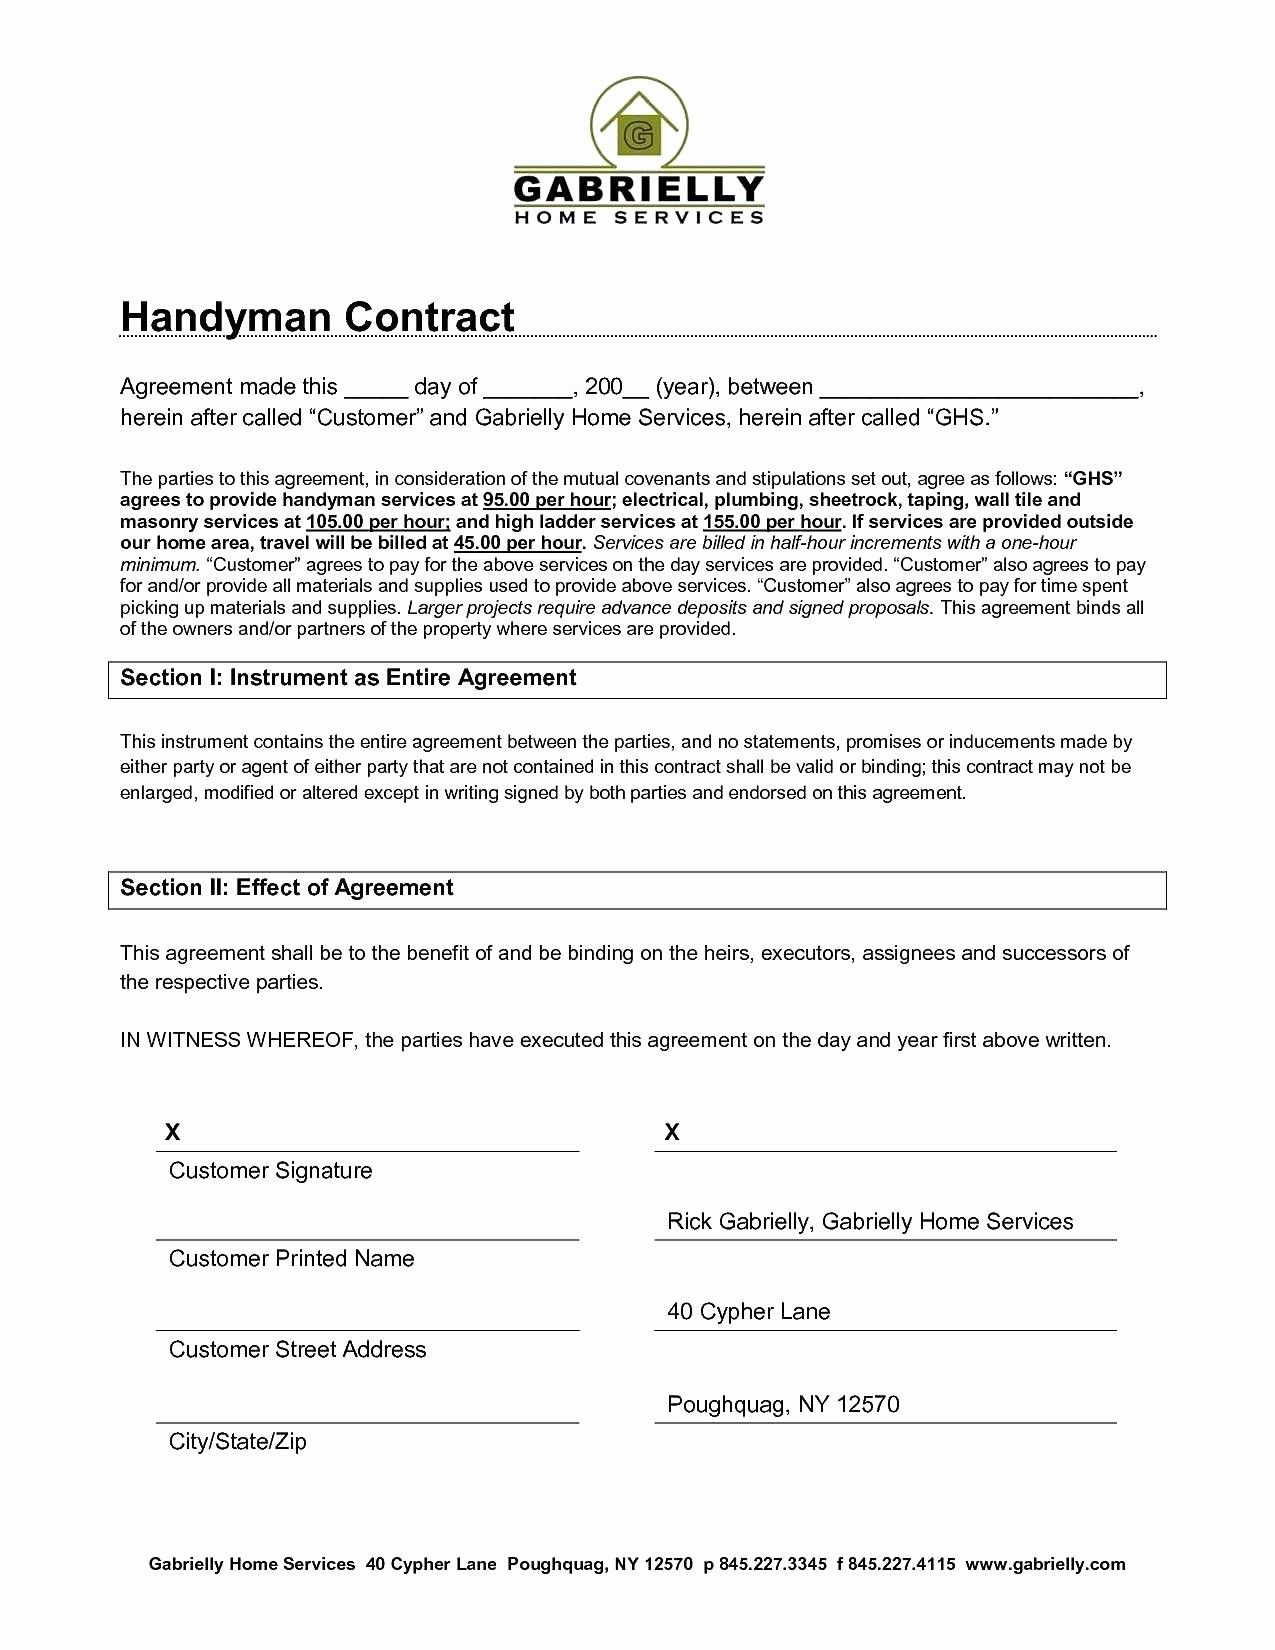 Contract For Services Rendered Template New Template Contract Template For Services Contract Template Contract Web Design Contract Contract for services rendered template